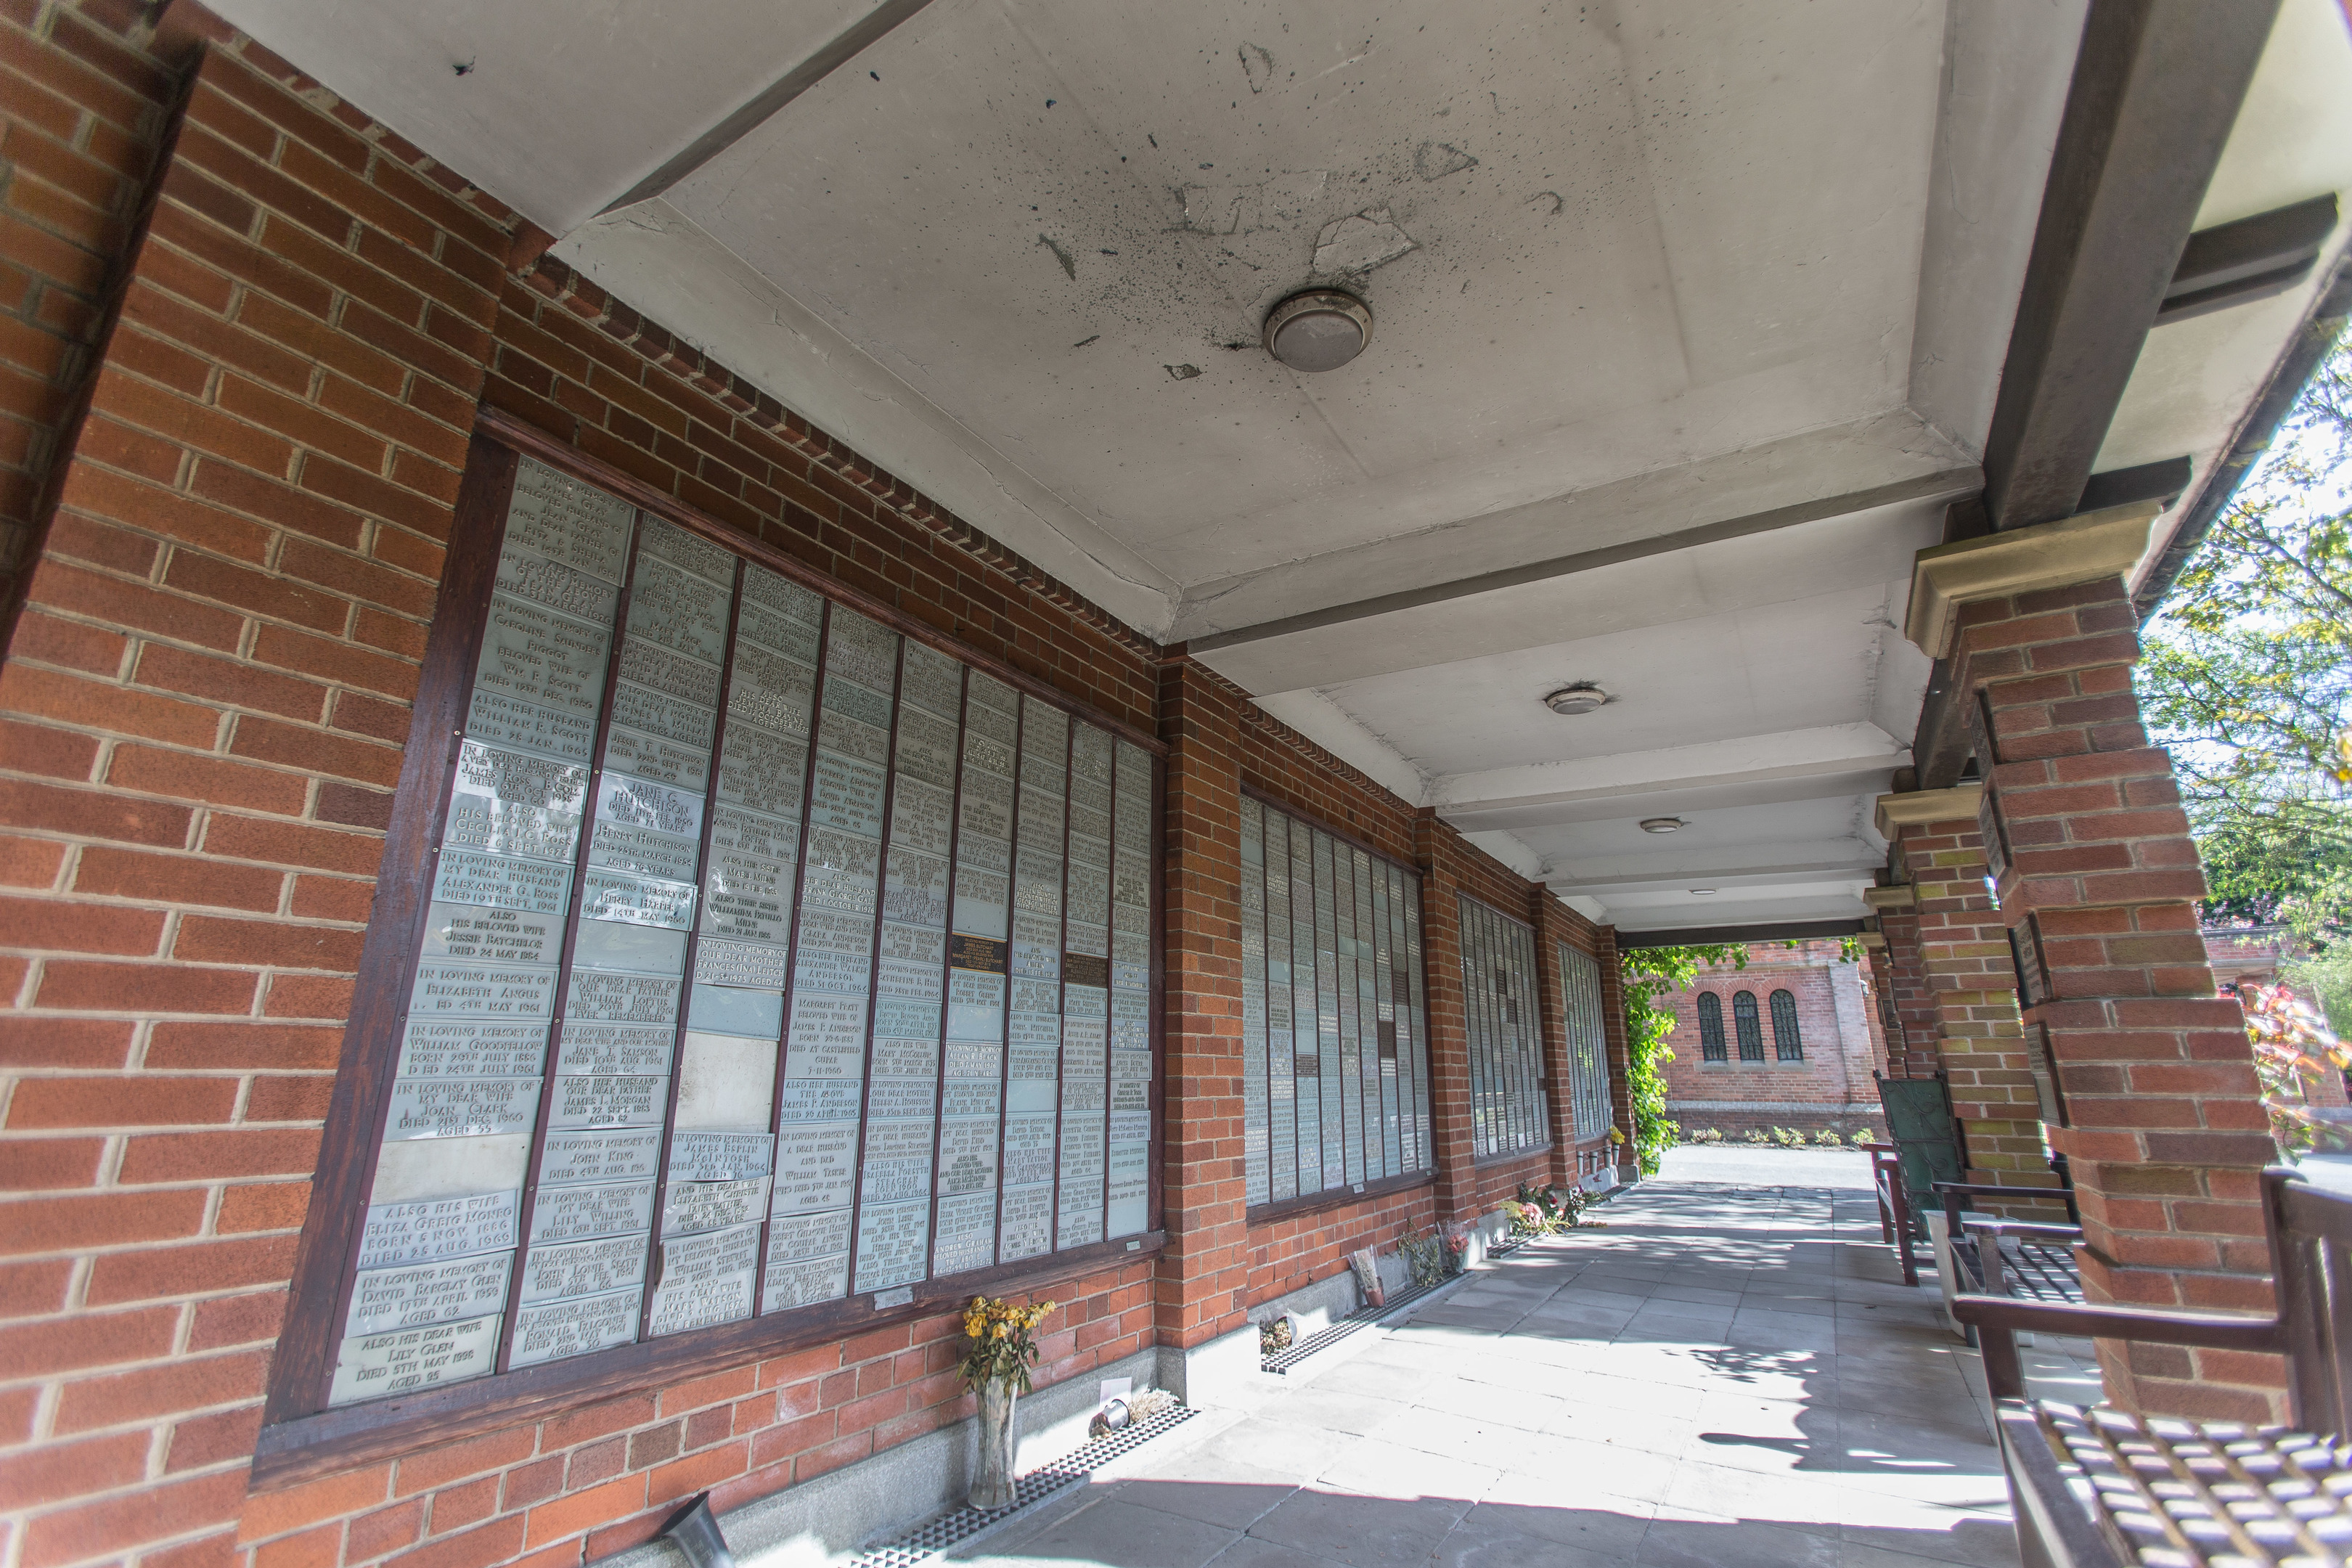 Some of the plaques were so badly damaged that they had to be removed.